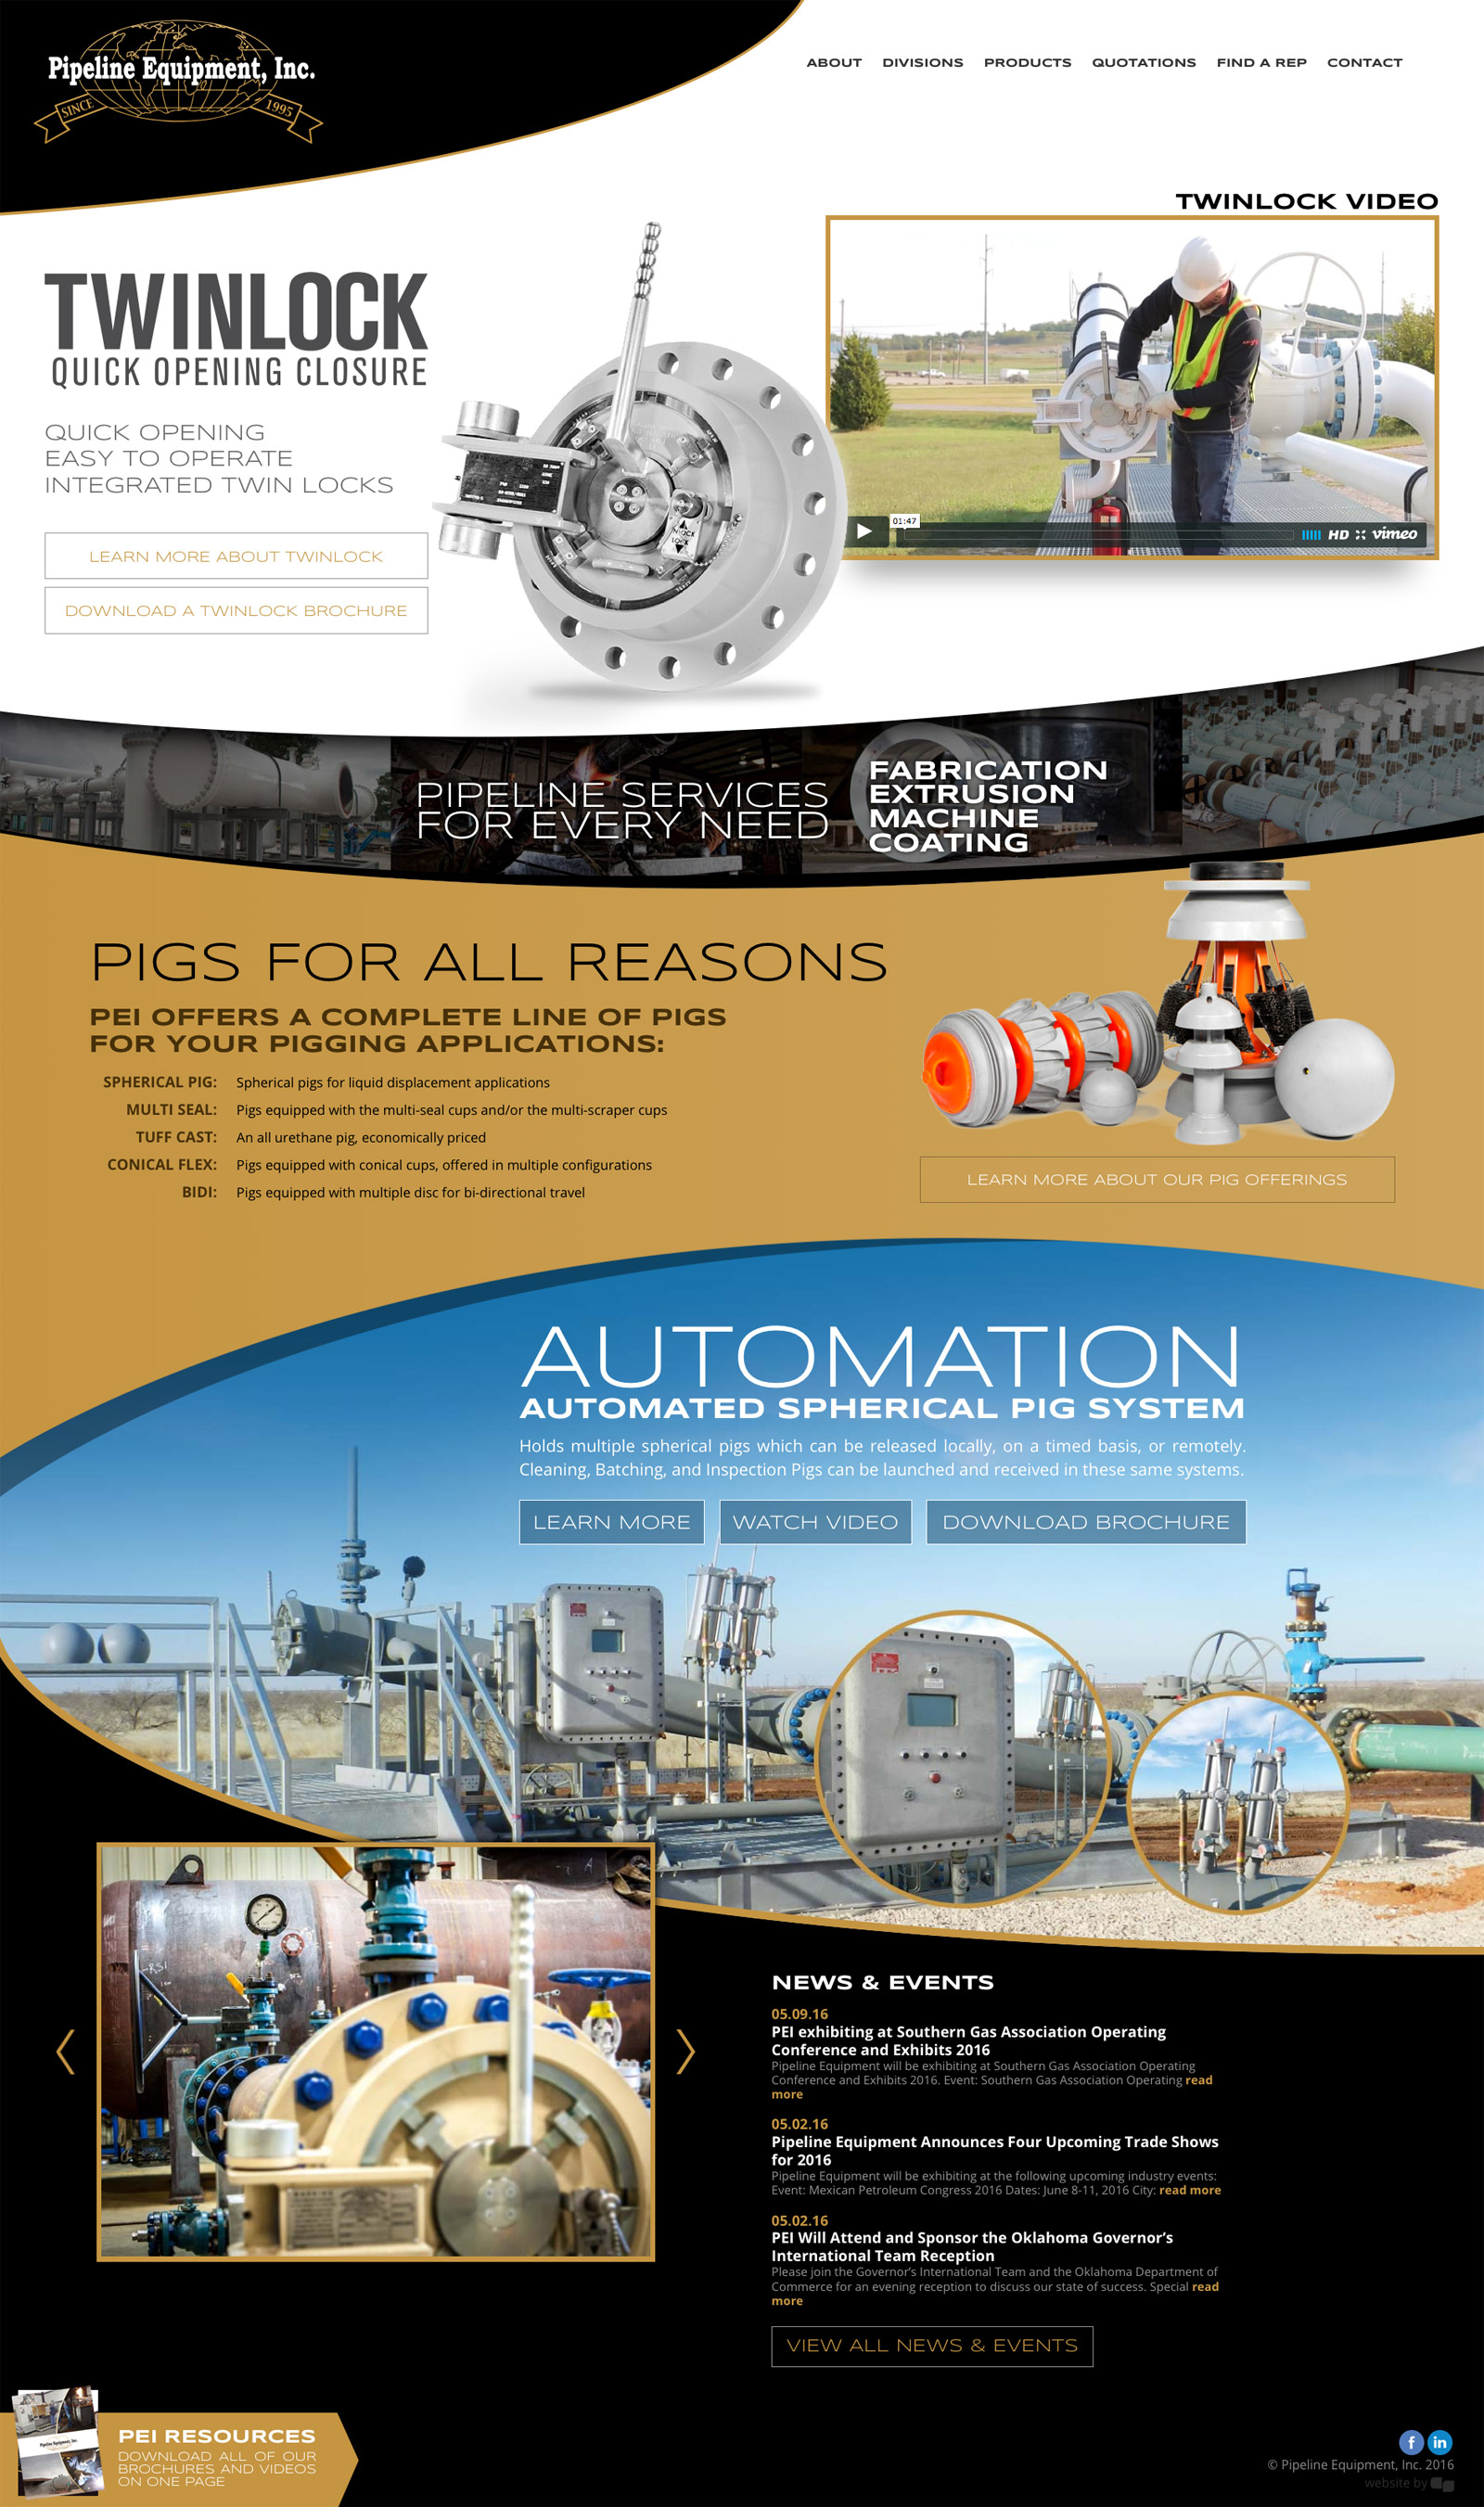 Tulsa Web Design for Pipeline Equipment